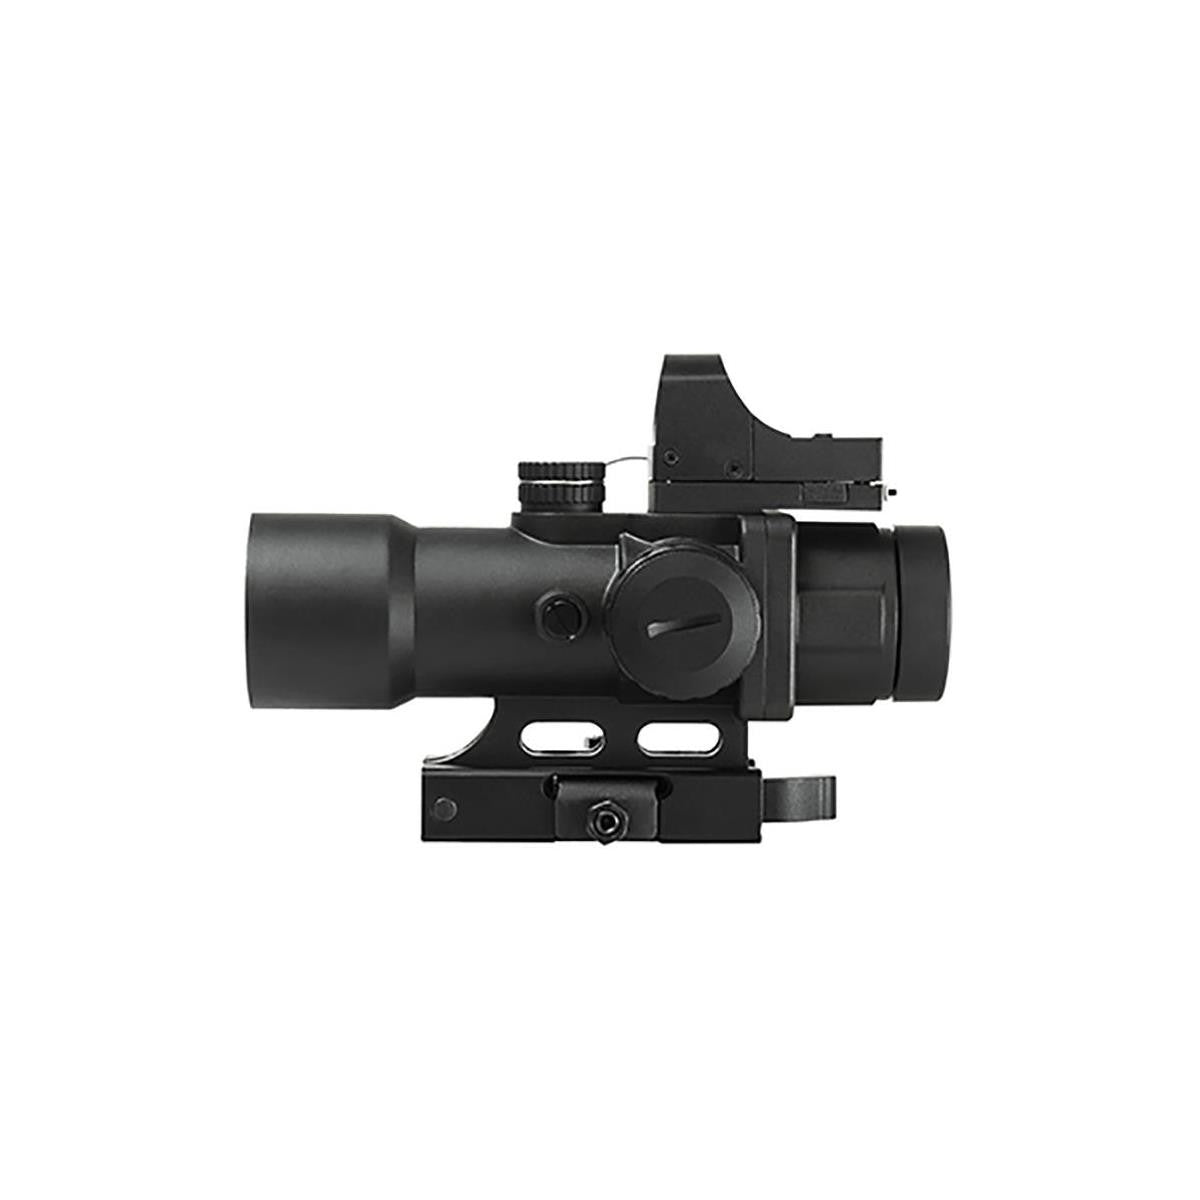 ncstar red dot sight instructions